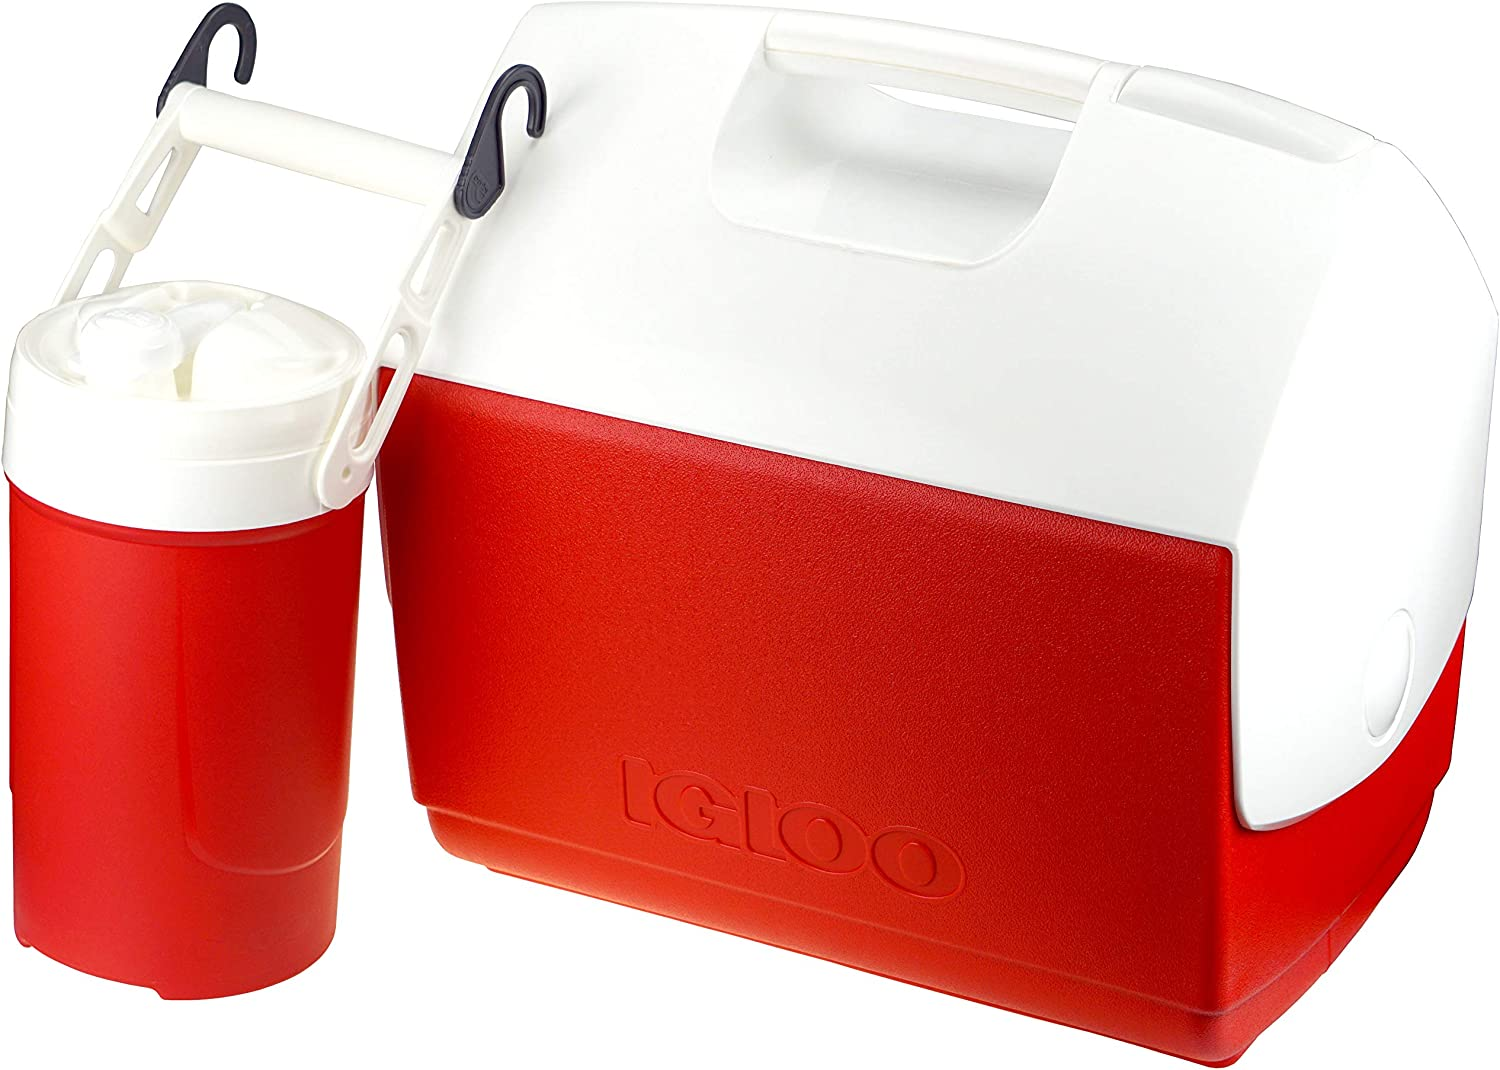 Igloo Playmate Coolers: 16 Quart Cooler and 1/2 Gallon Sport Beverage Cooler, Red